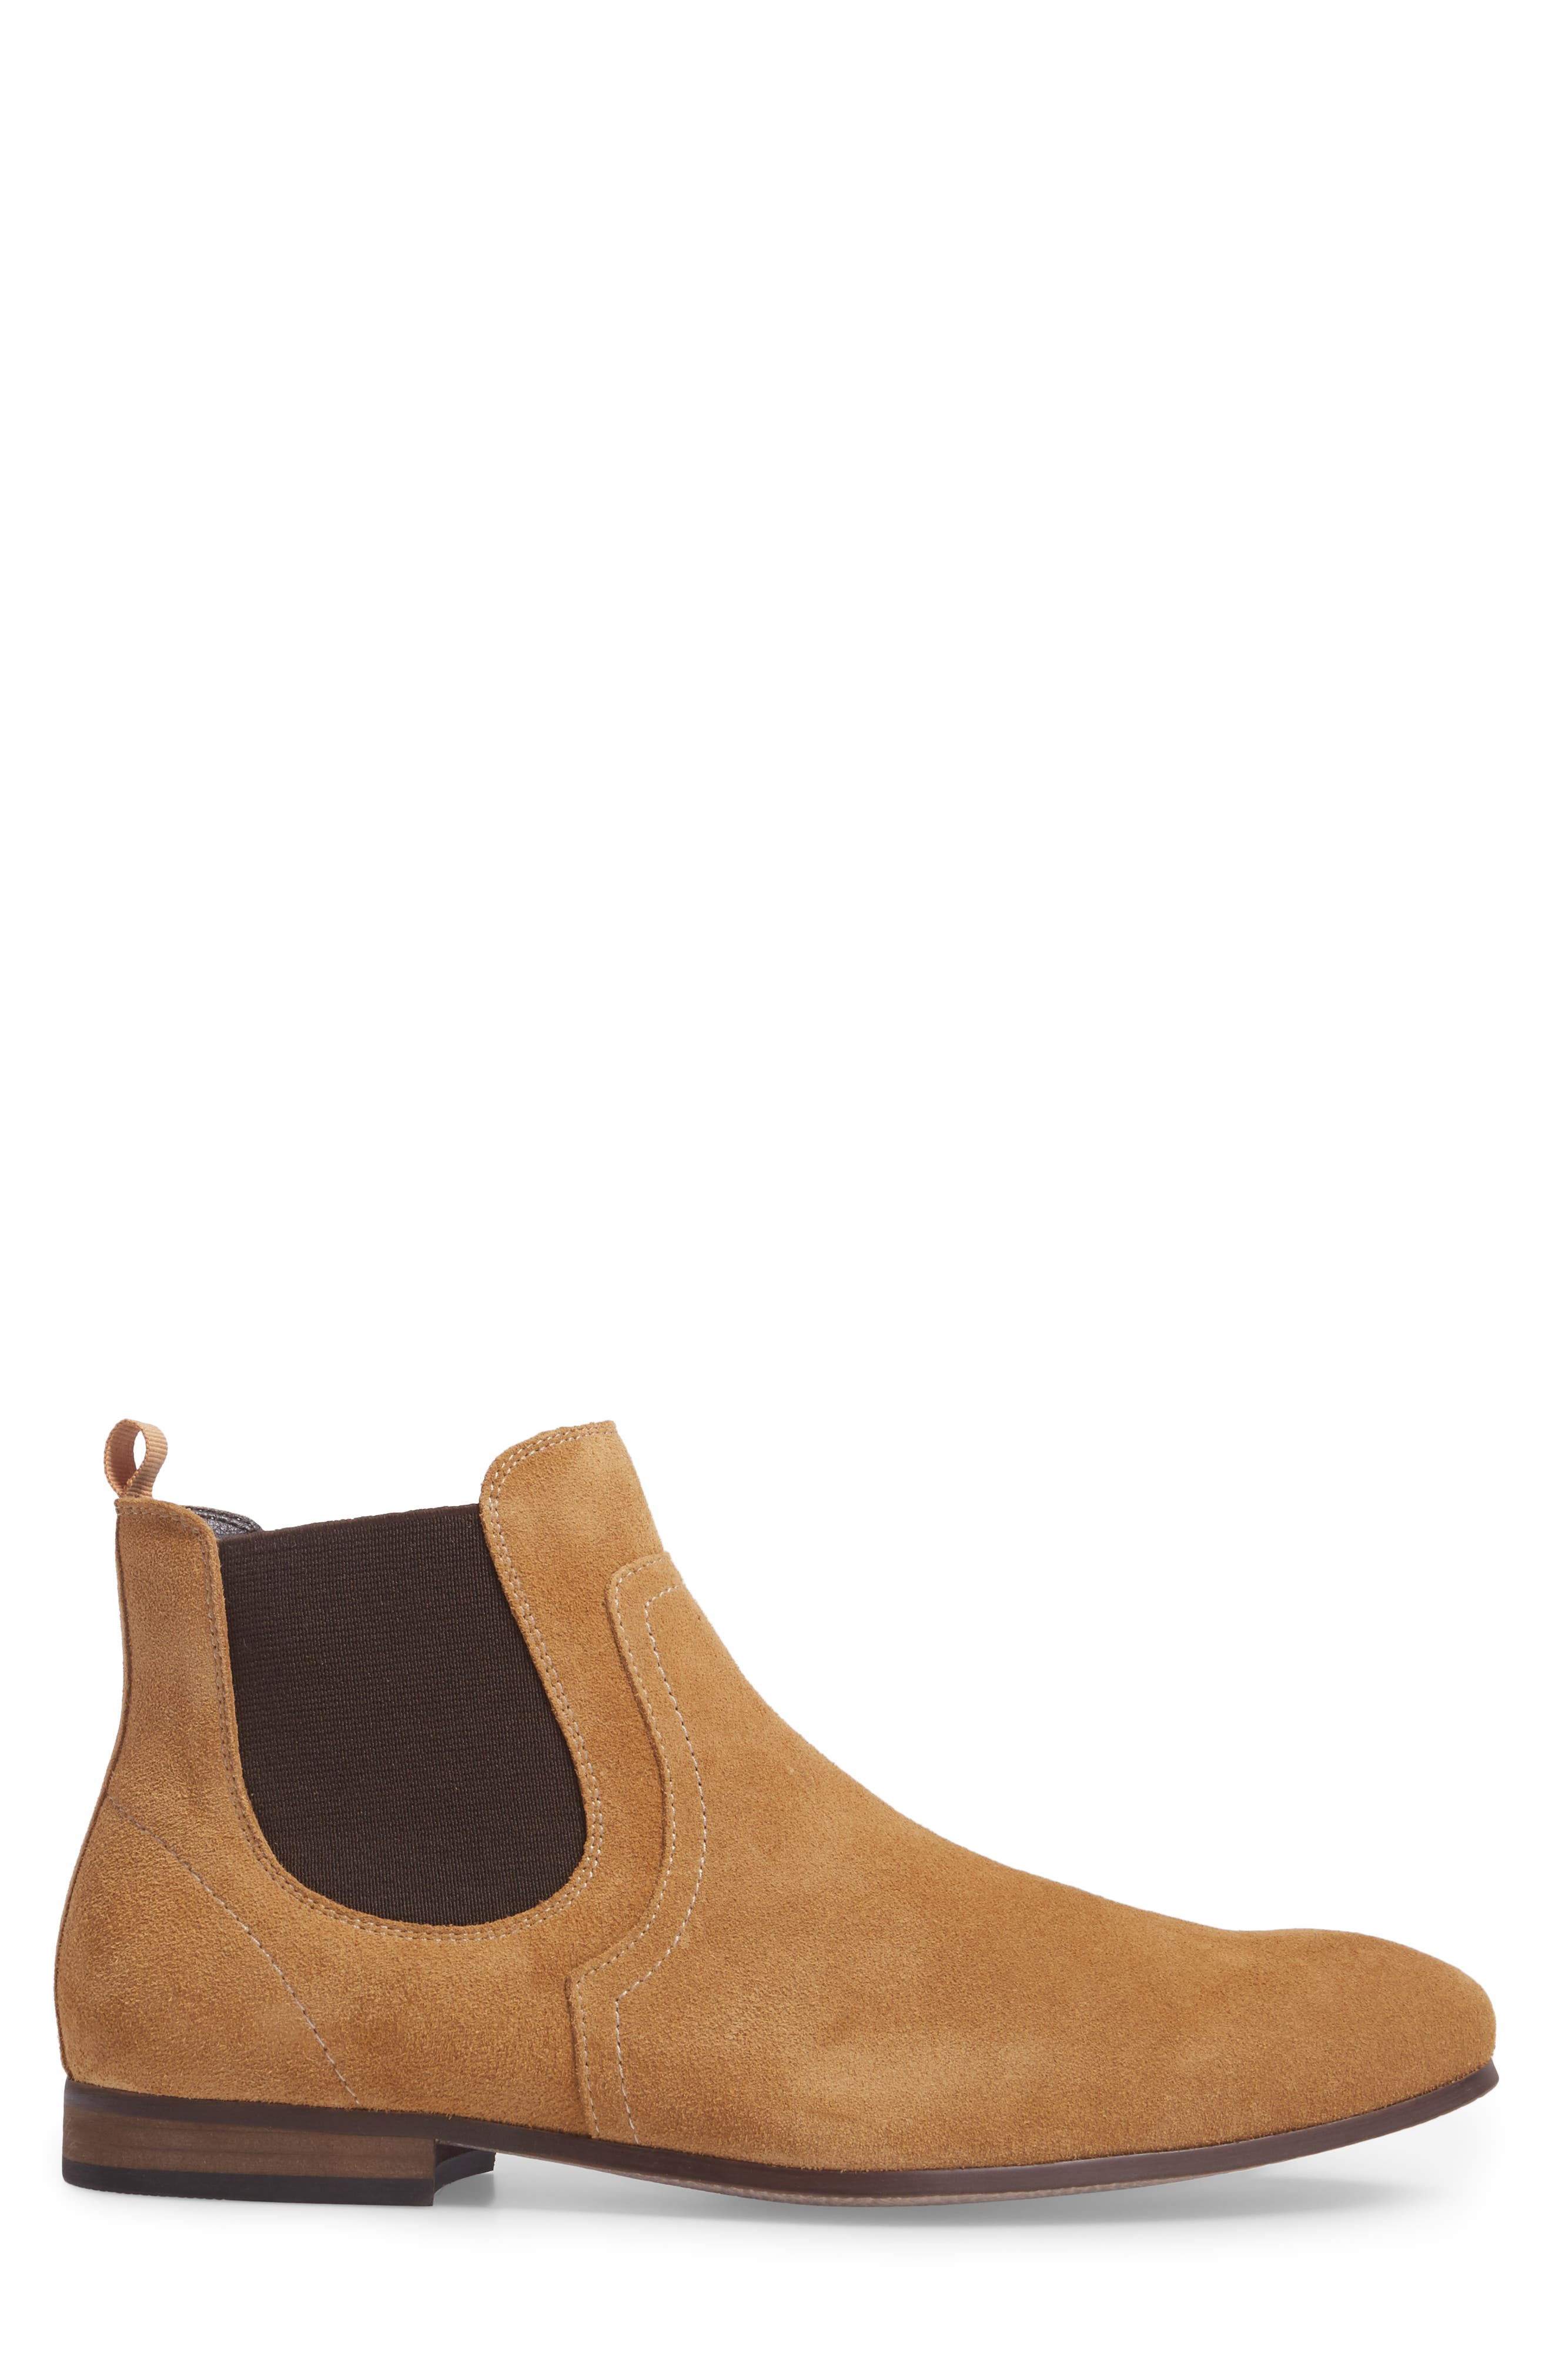 Brysen Chelsea Boot,                             Alternate thumbnail 39, color,